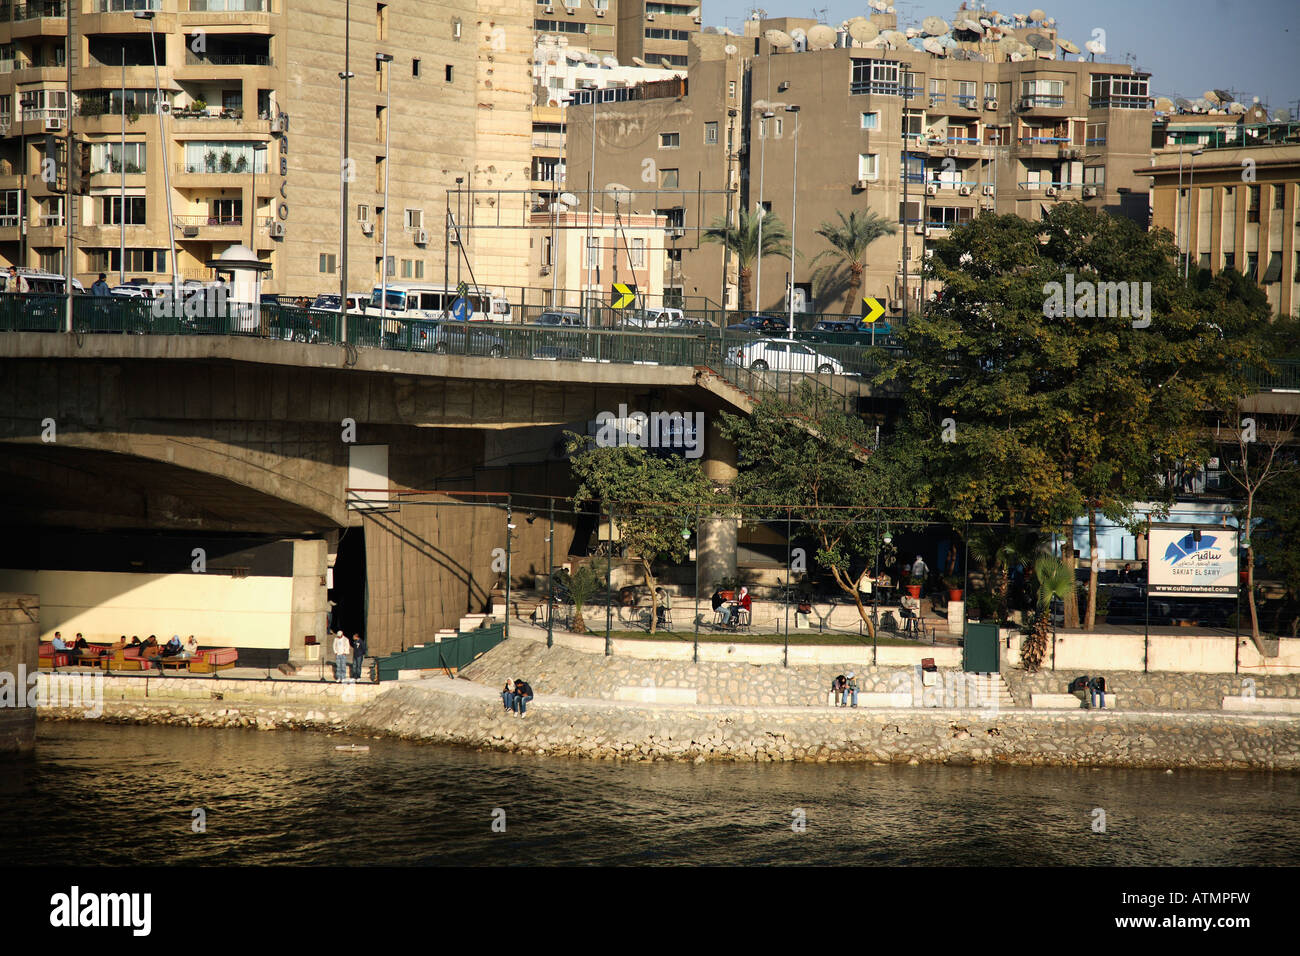 Al-Sawy Cultur Wheel by the Nile in Cairo. - Stock Image